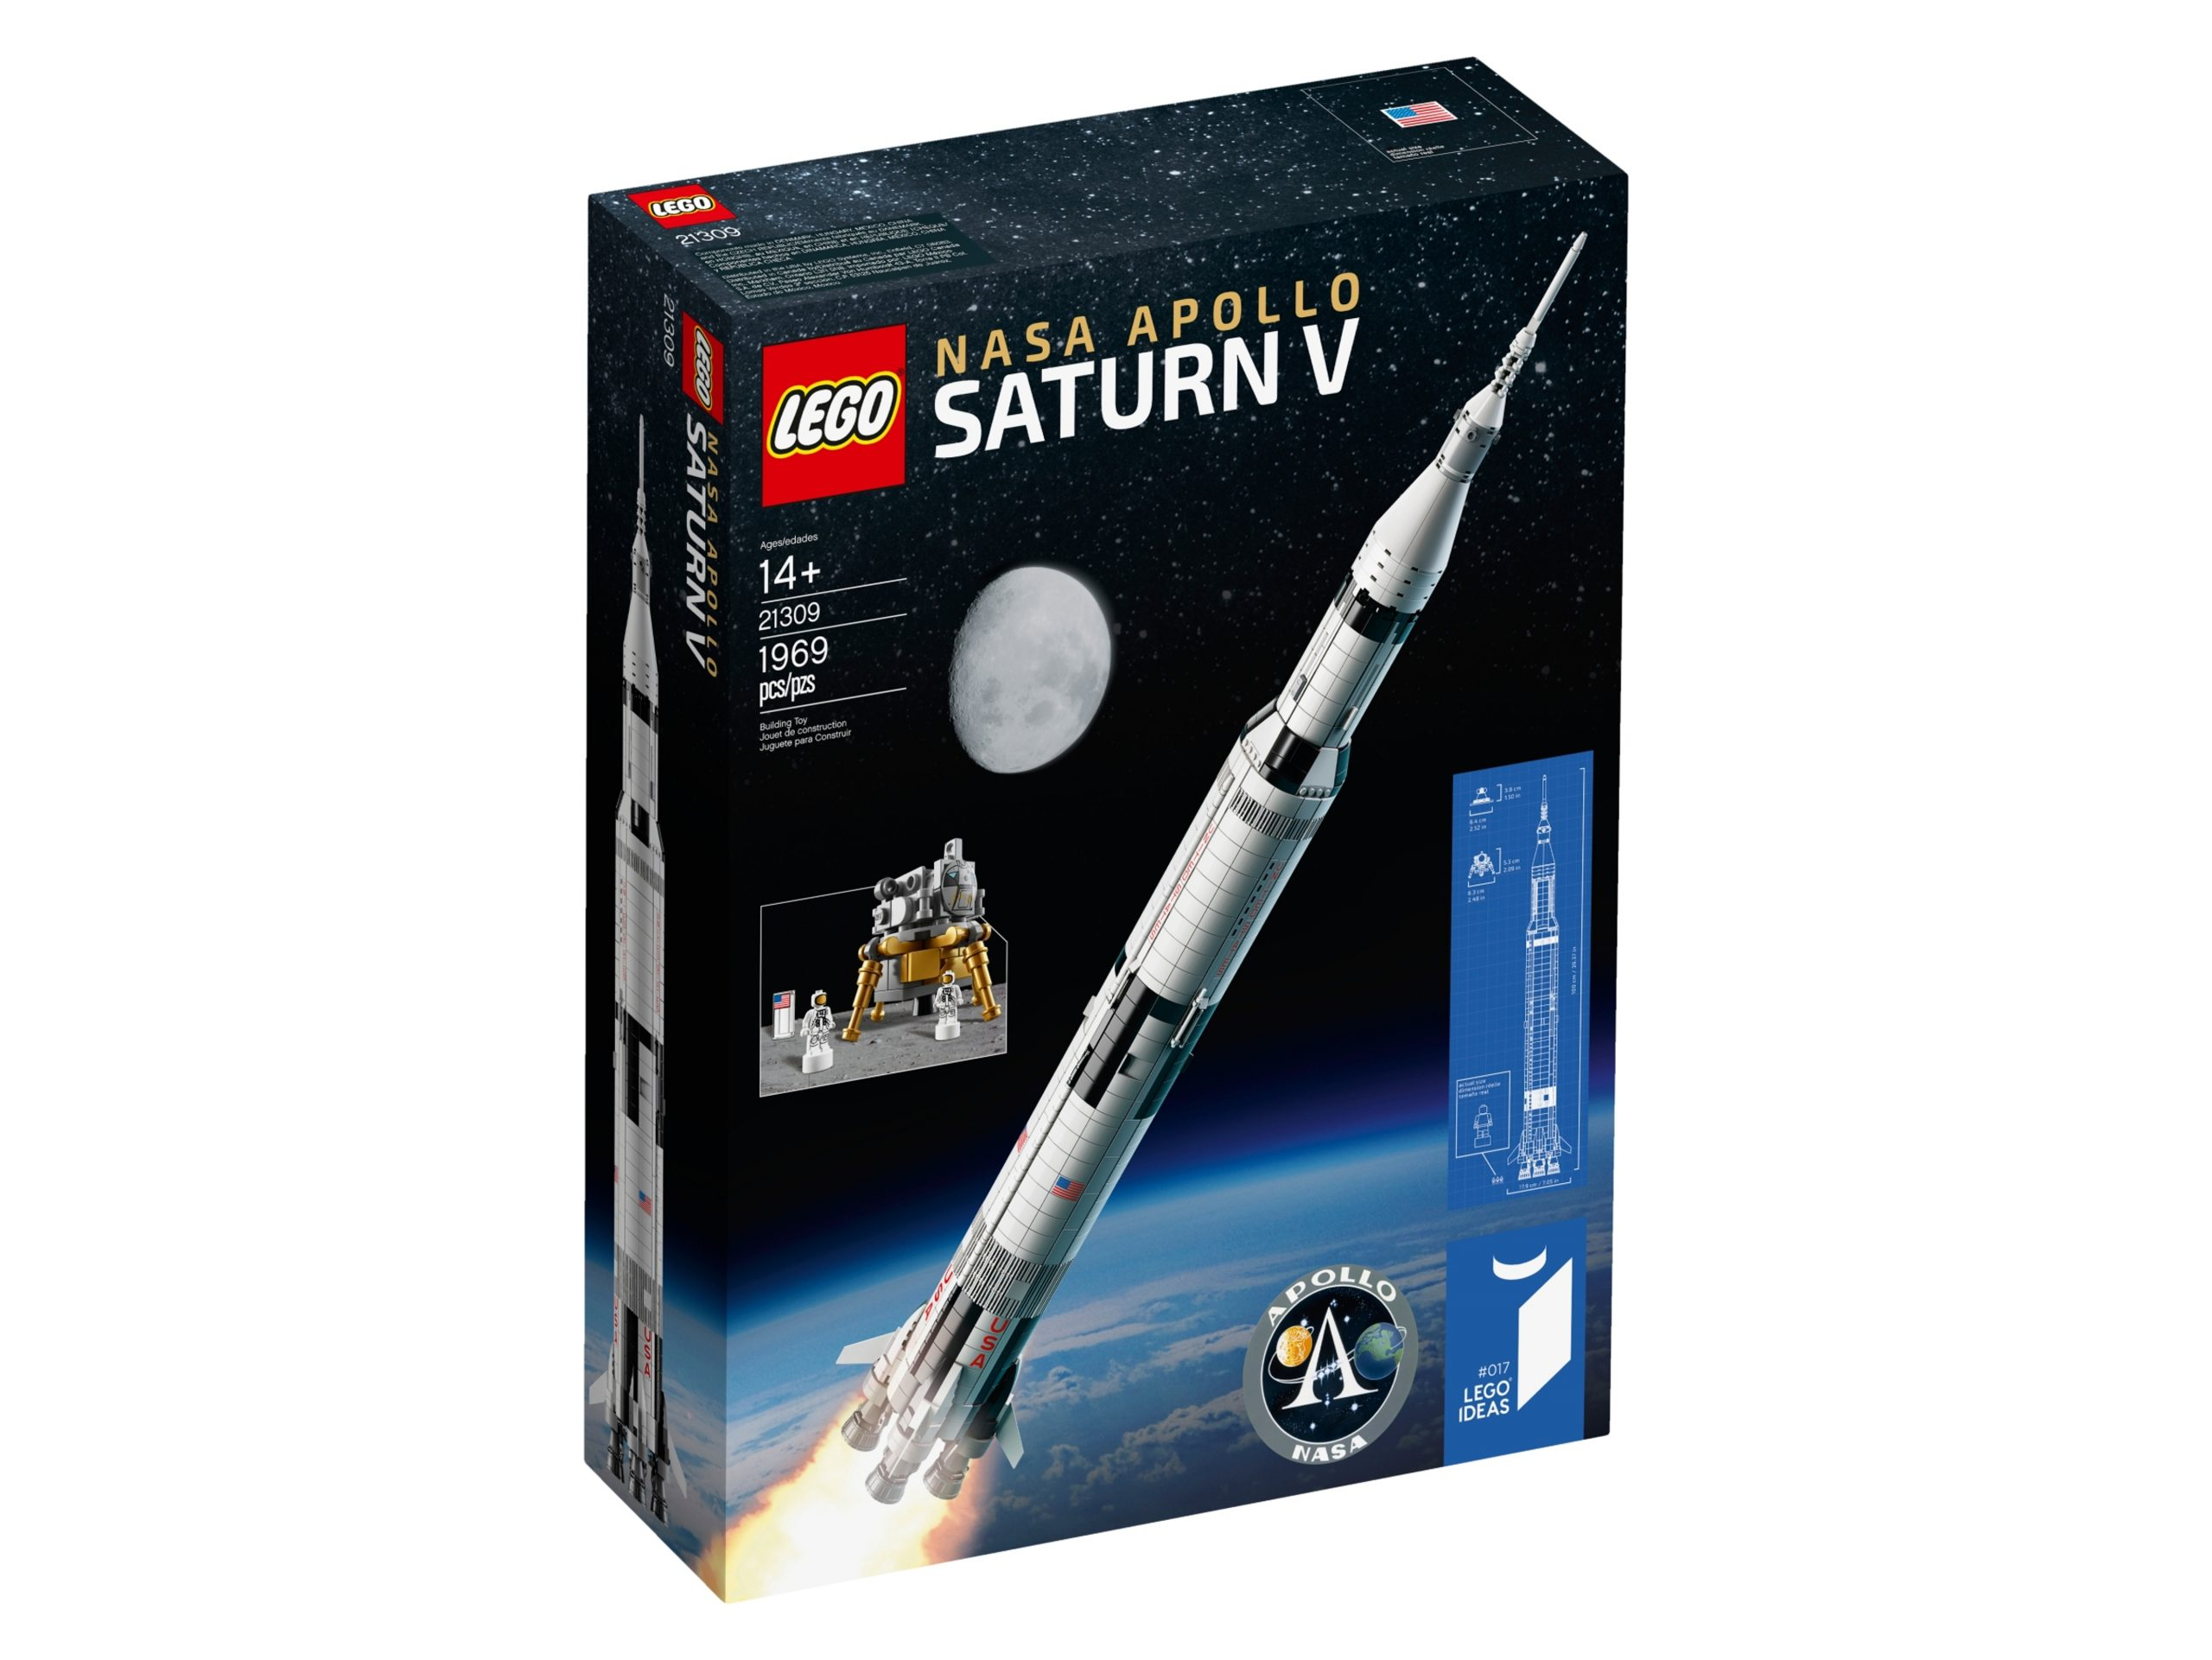 saturn v apollo lego 21309 nasa scaled